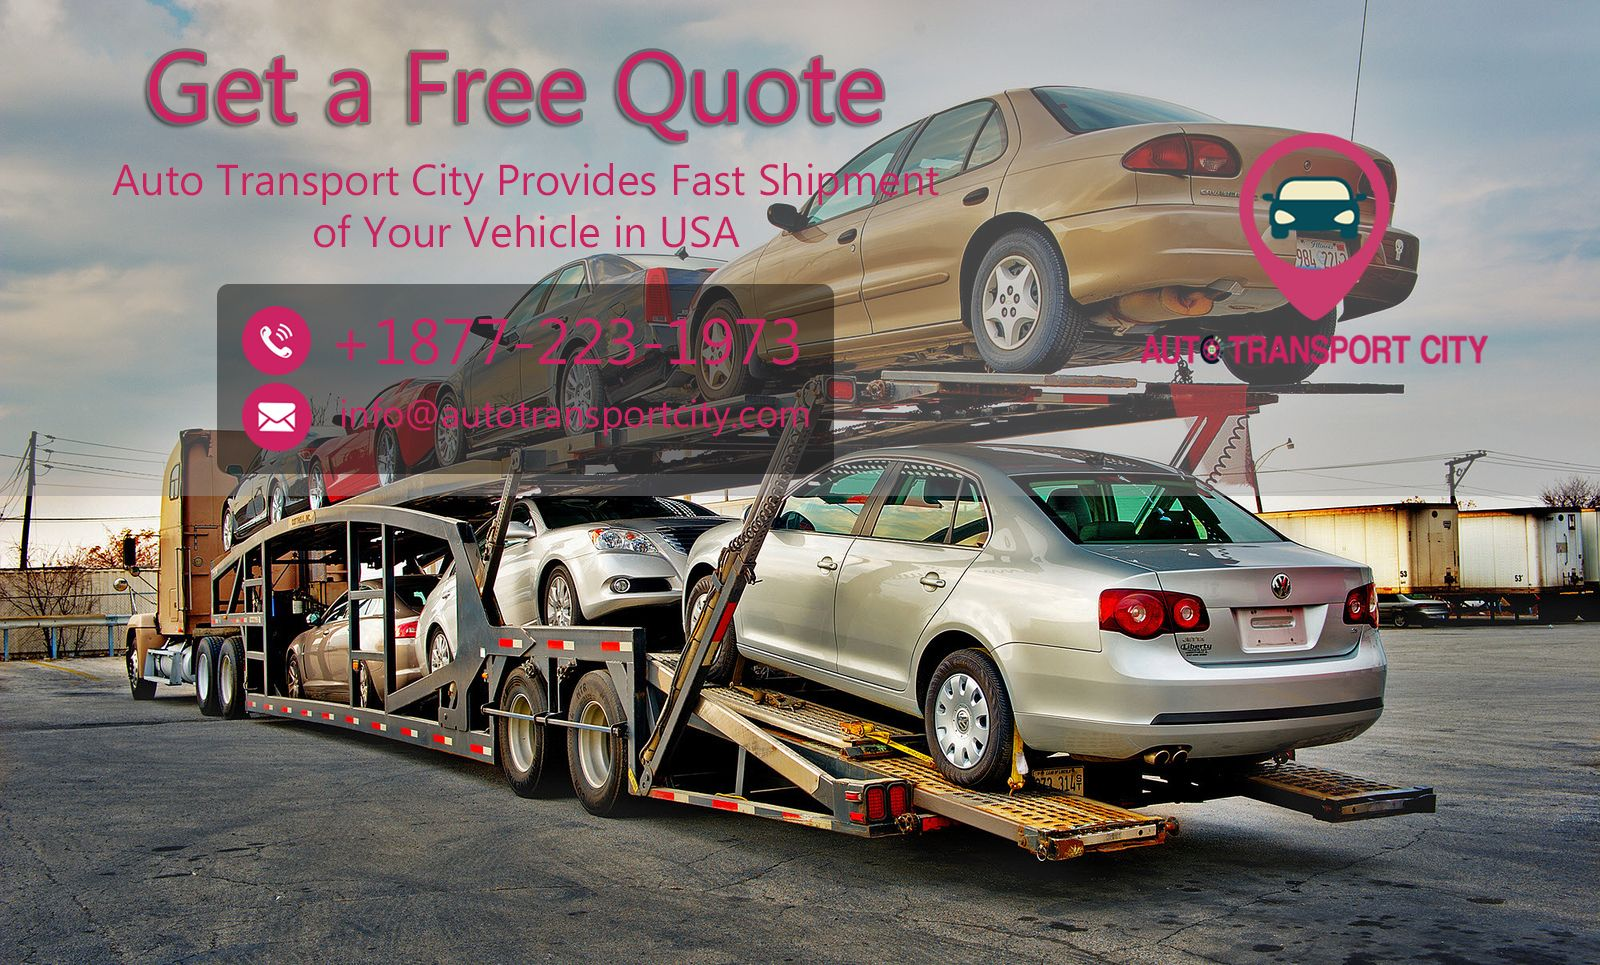 Auto Transport Quotes Stunning Pinauto Transport City On Get A Free Quote  Pinterest . Design Inspiration